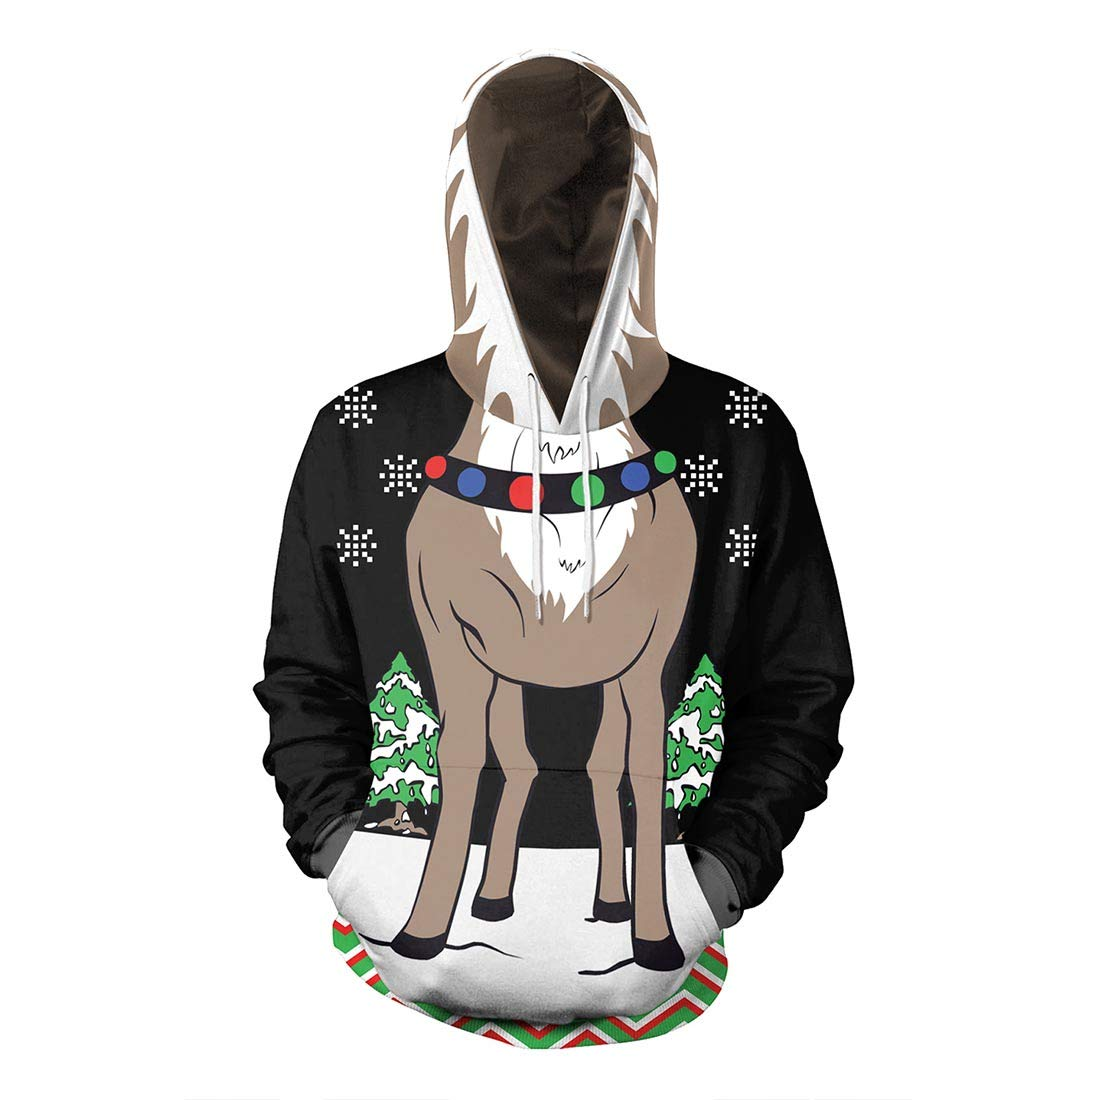 Unisex Christmas Ugly Hoodie Funny 3D Printed Snowman Sweatshirt Hooded Sweater Pullover with Big Pockets